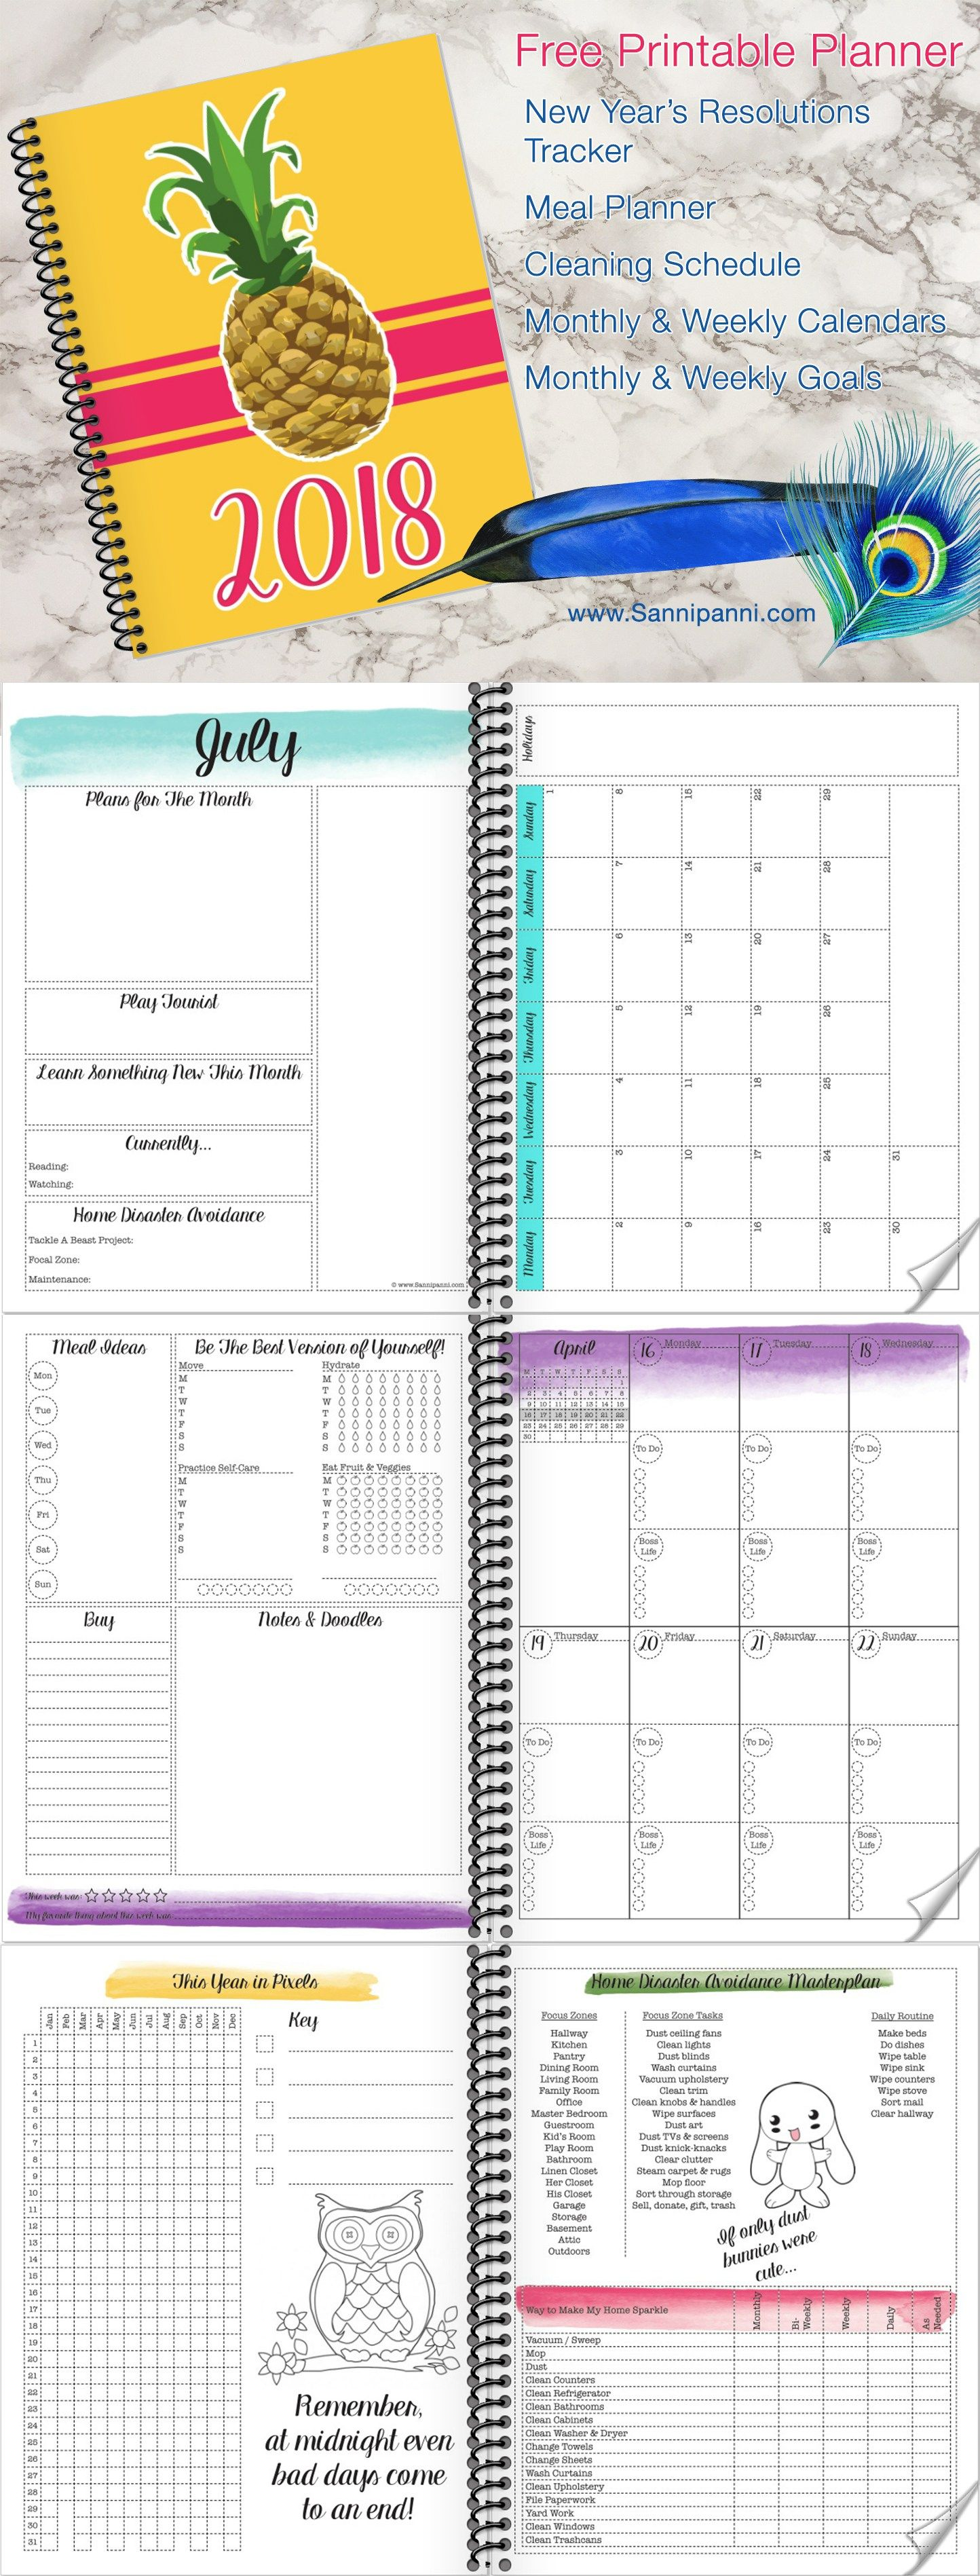 The Most Amazing Free Printable Planner For Includes Weekly And Monthly Spreads Goal